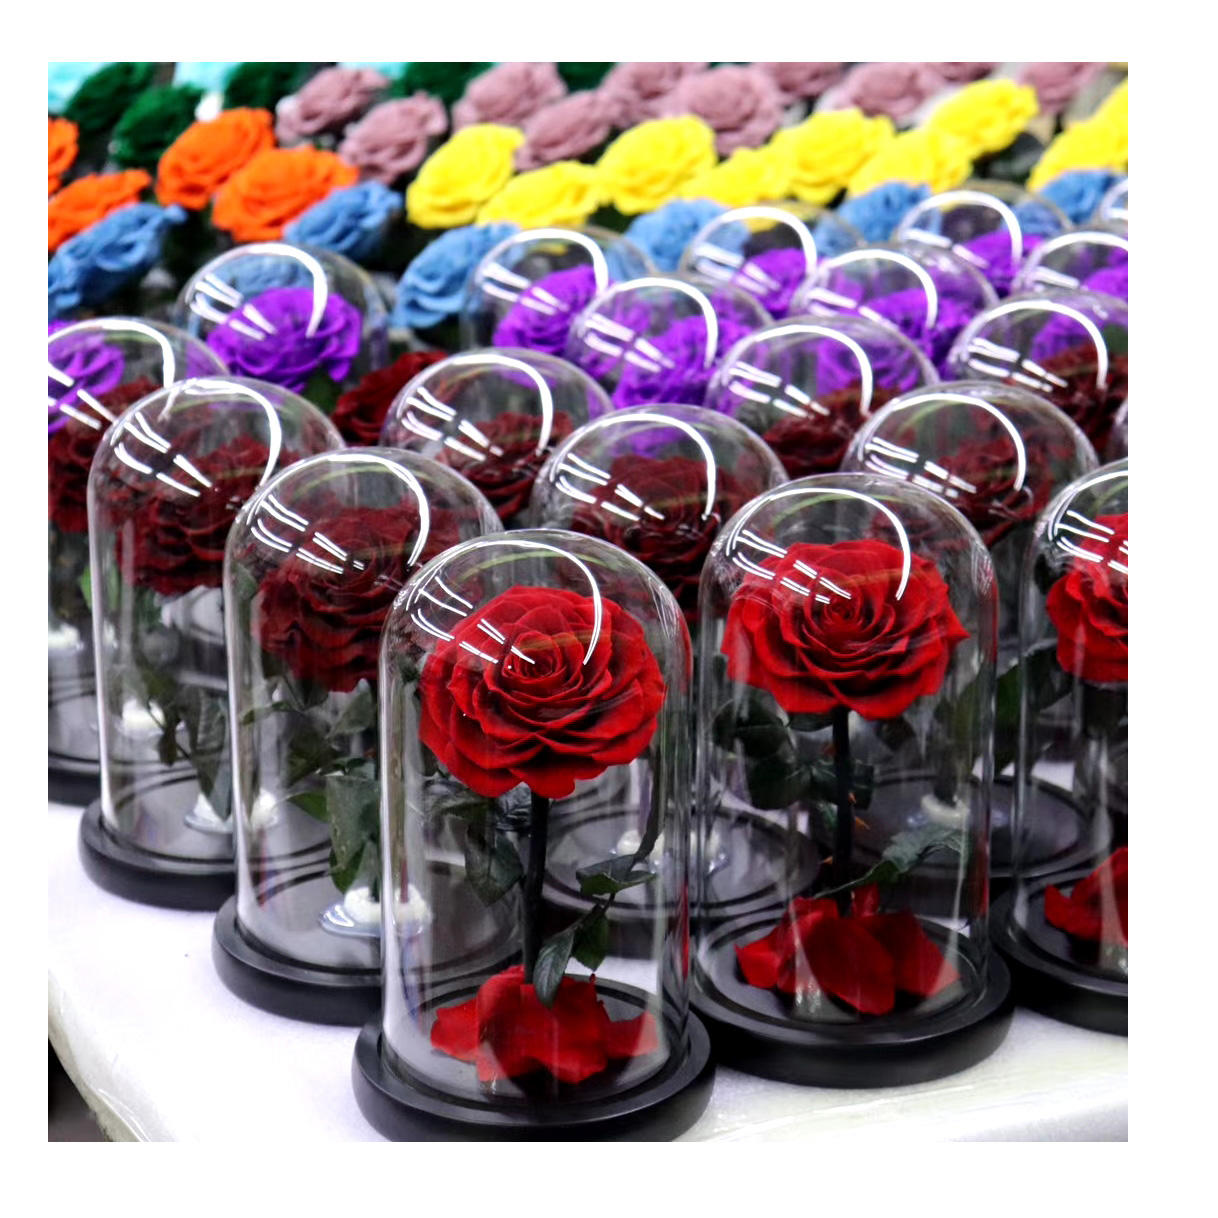 2020 Hot selling Natural preserved roses long life roses eternal roses in dome glass for wedding